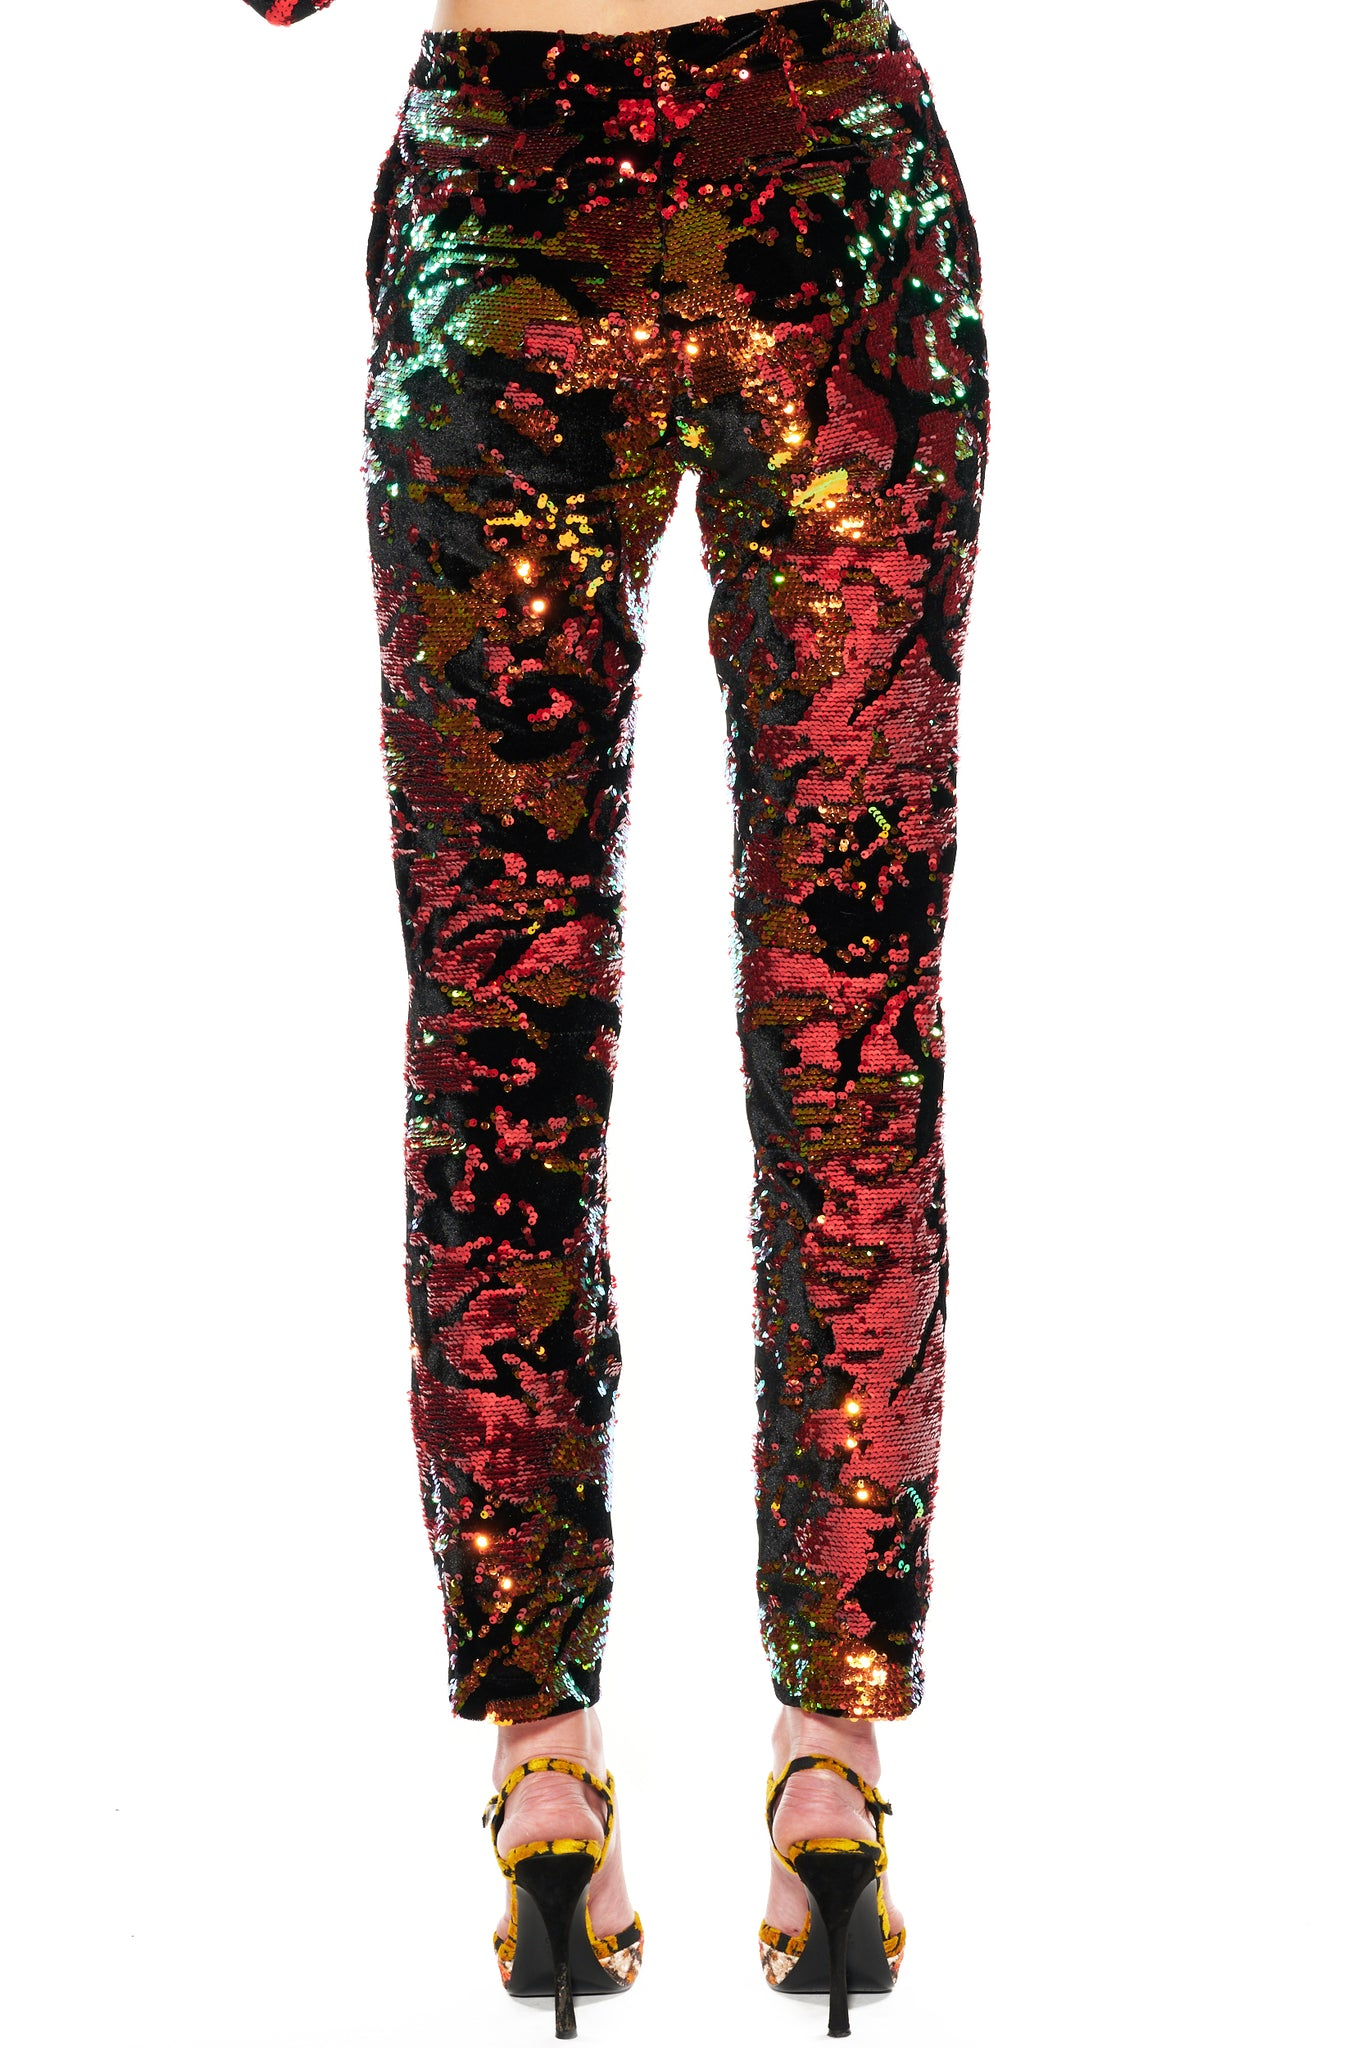 RED ORANGE SEQUIN AND VELVET PANTS - Women's Bottoms - Libertine